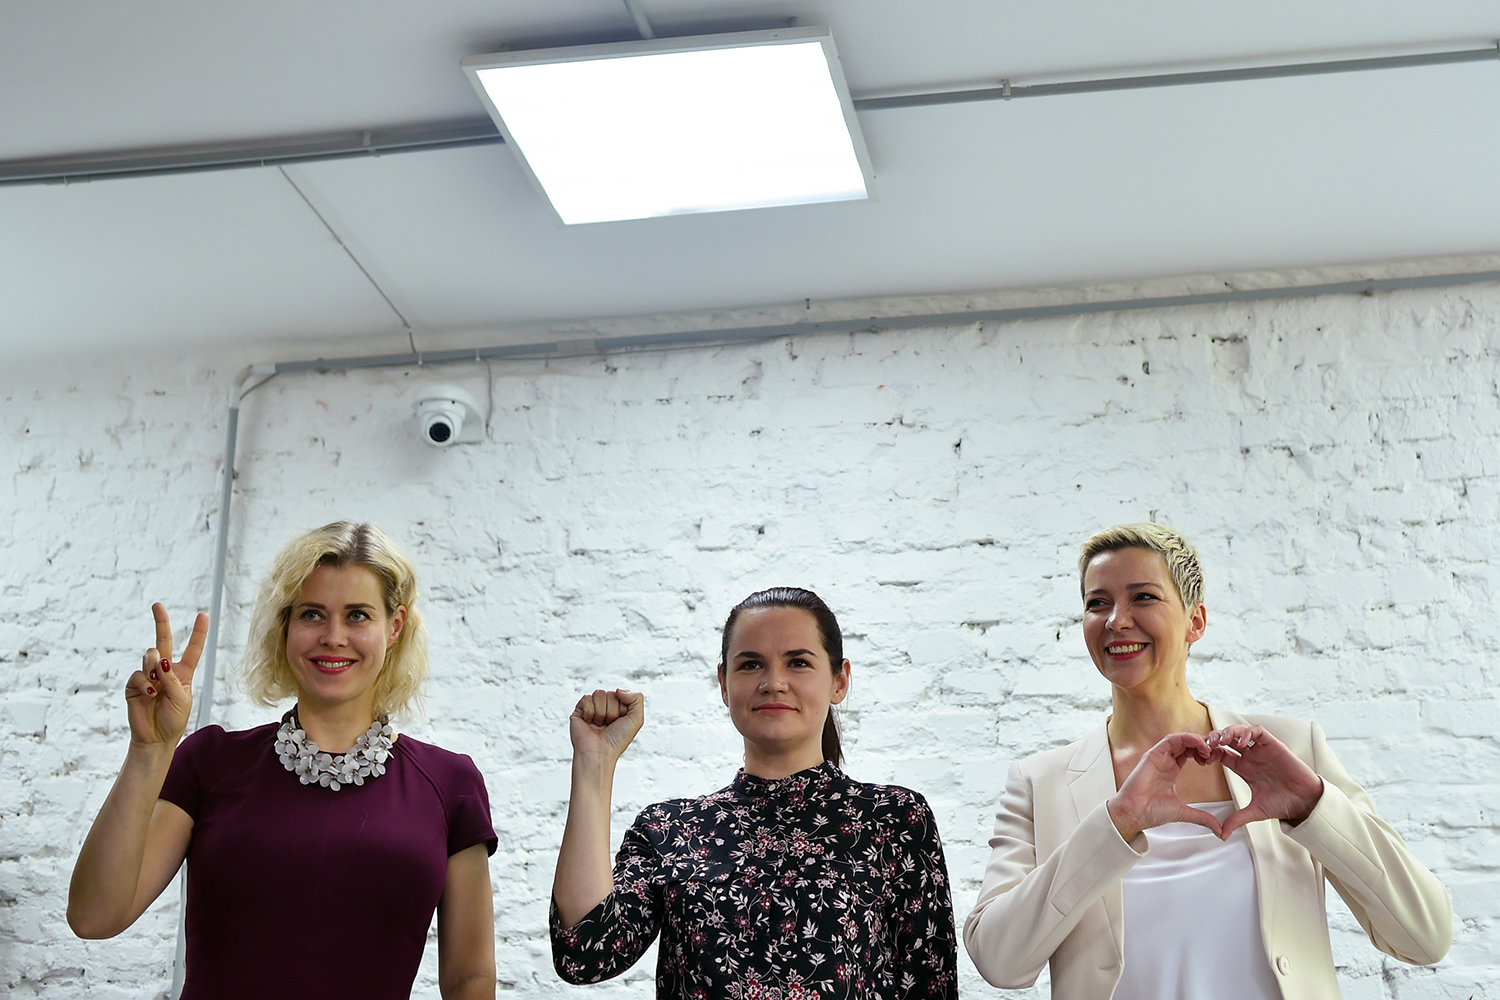 From left: Veronica Tsepkalo, Tsikhanouskaya, and Maria Kalesnikava pose with their signature gestures during a news conference in Minsk on July 17, 2020.